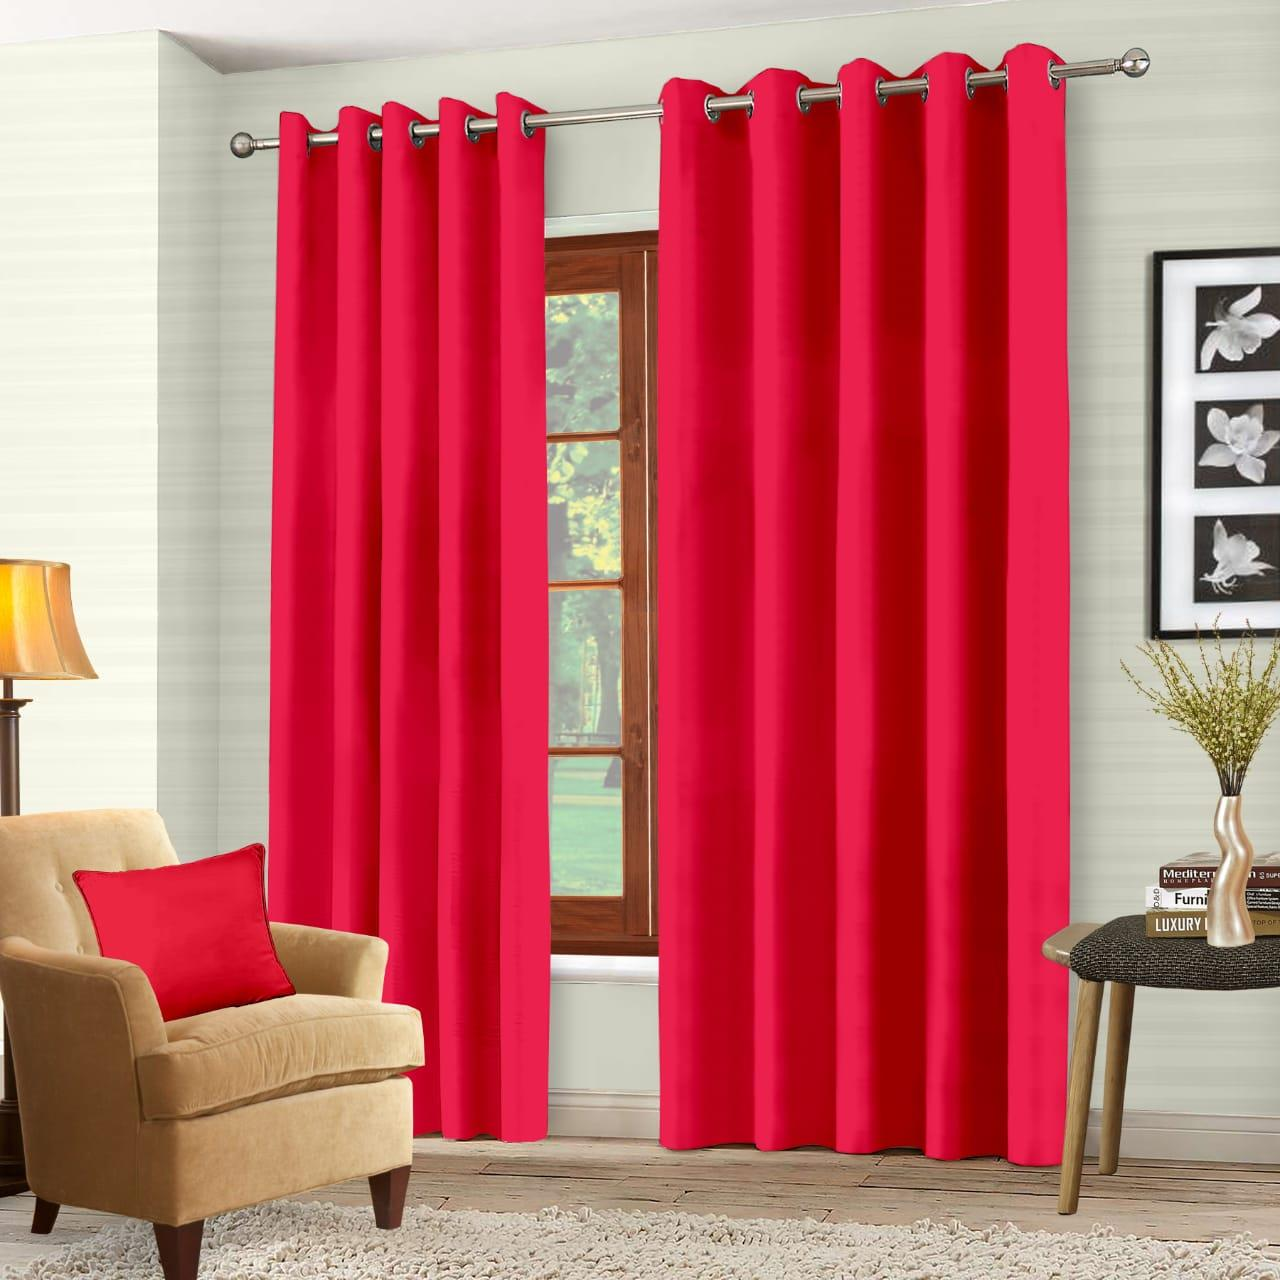 Luxury-Thermal-Blackout-Eyelet-Ring-Top-Curtains-Pair-with-tie-backs thumbnail 42